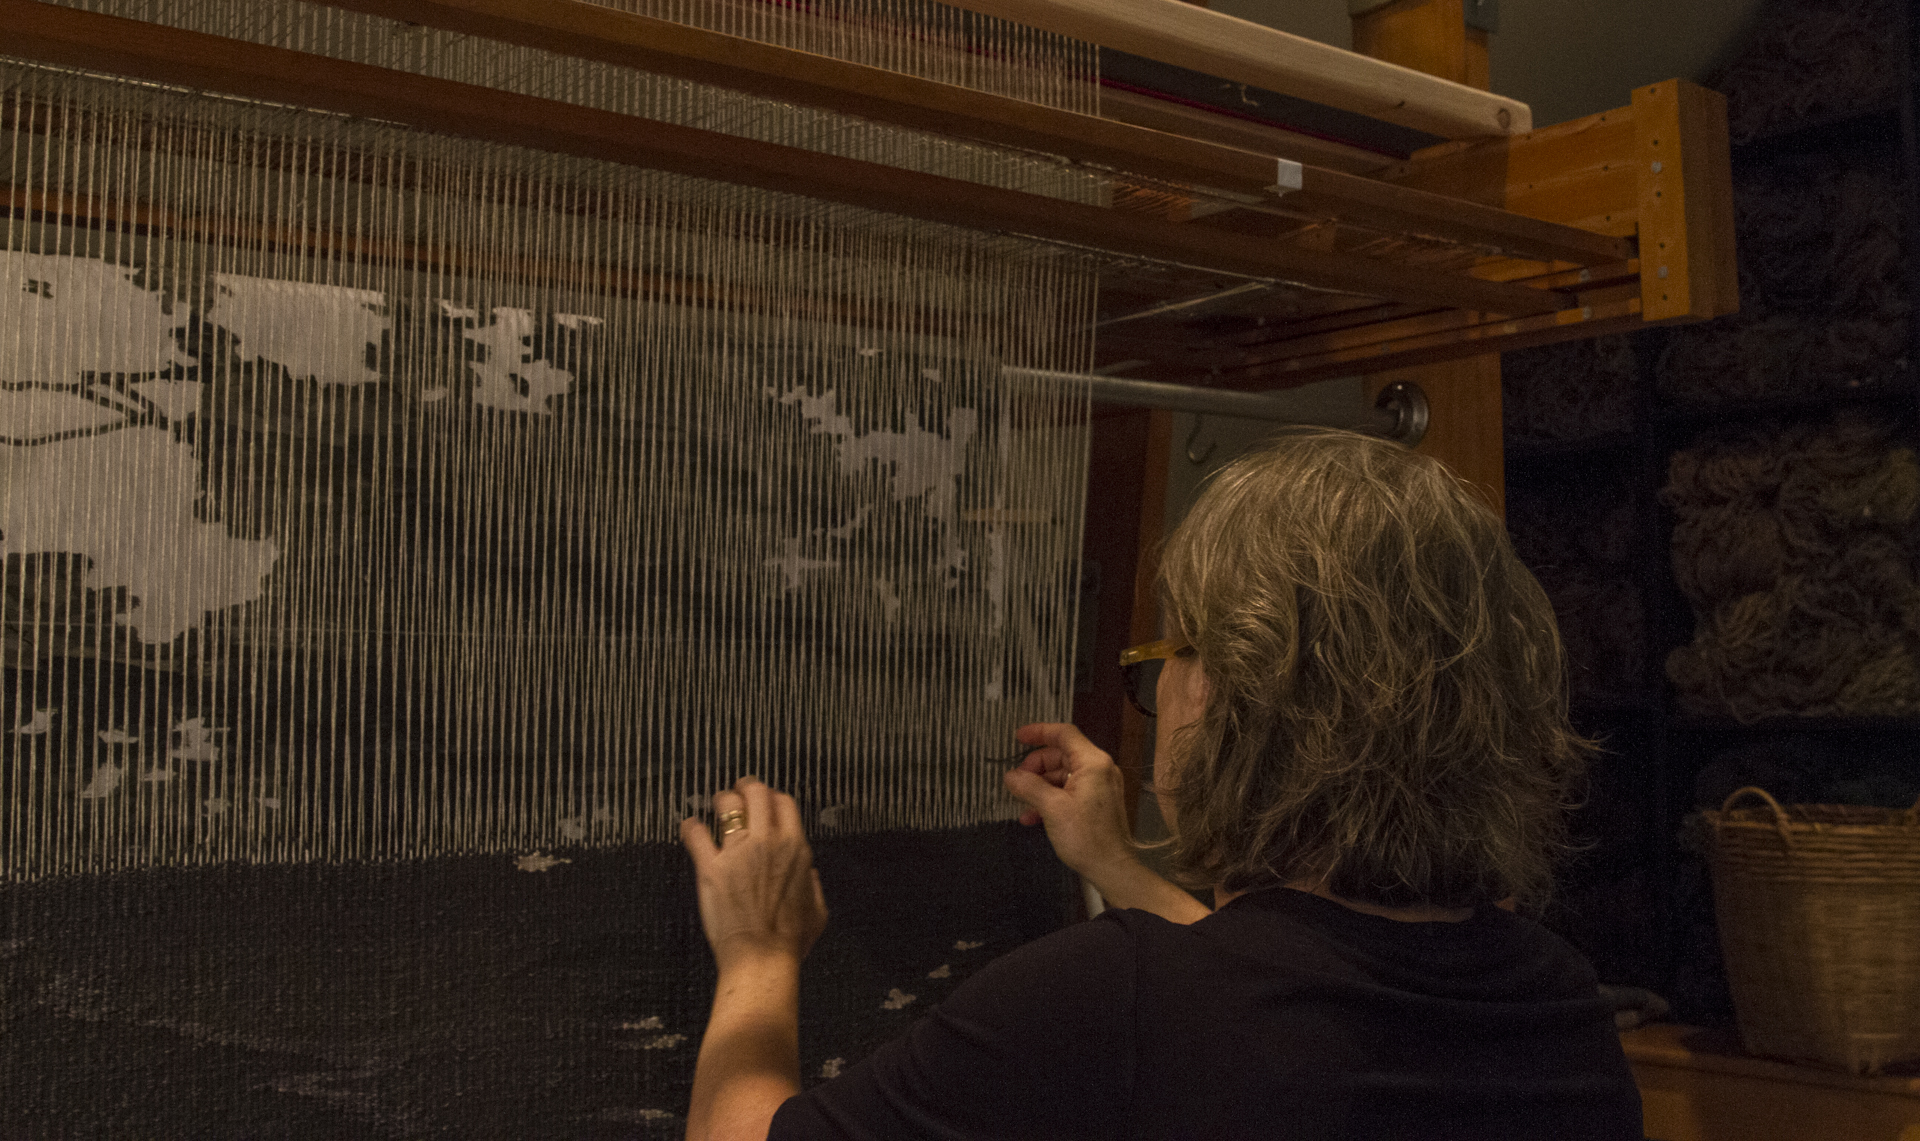 Lyn Sterling Montagne working on a linen tapestry on a vertical tapestry loom in her Atlanta studio, fall 2016